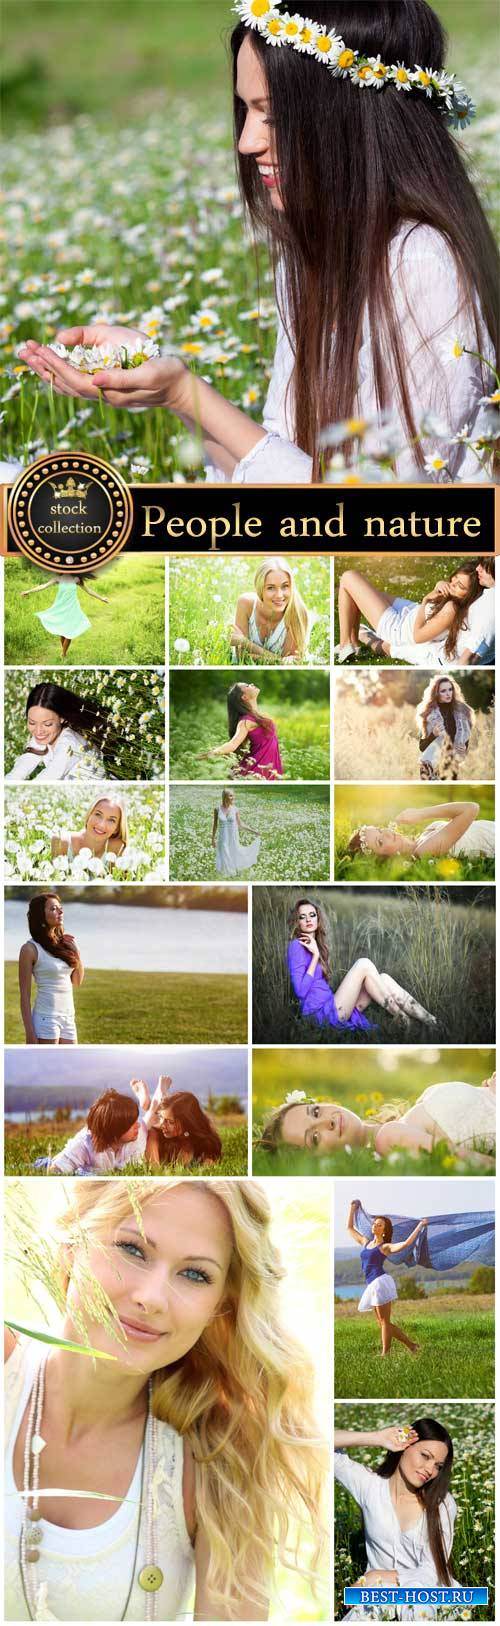 People and nature, women - stock photos